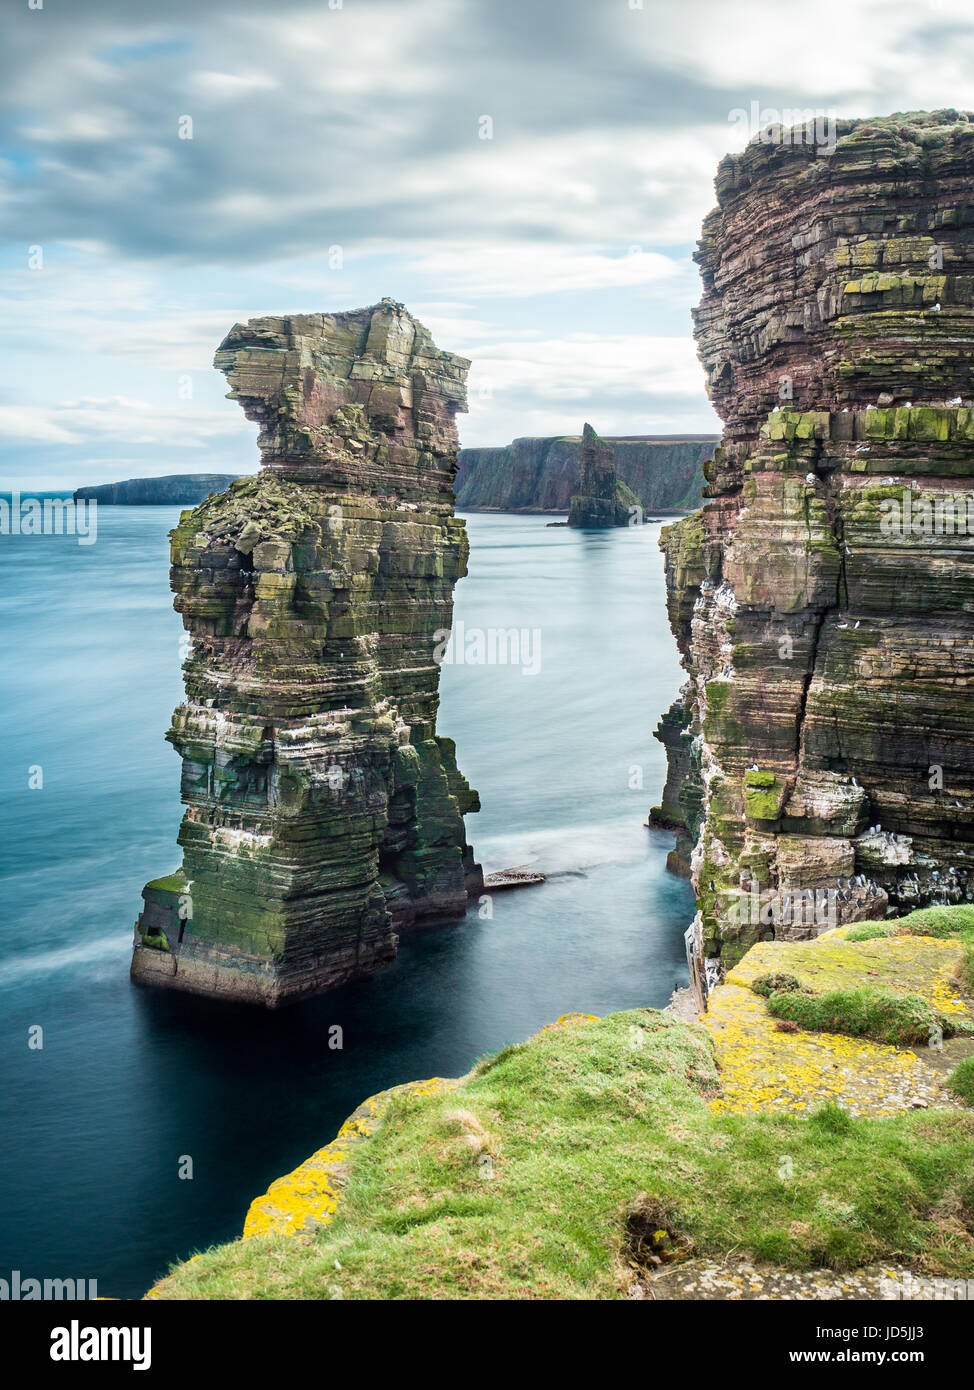 Sea stacks in the Pentland Firth at Duncansby Head, near John o'Groats, Caithness, Scotland. The stacks are - Stock Image